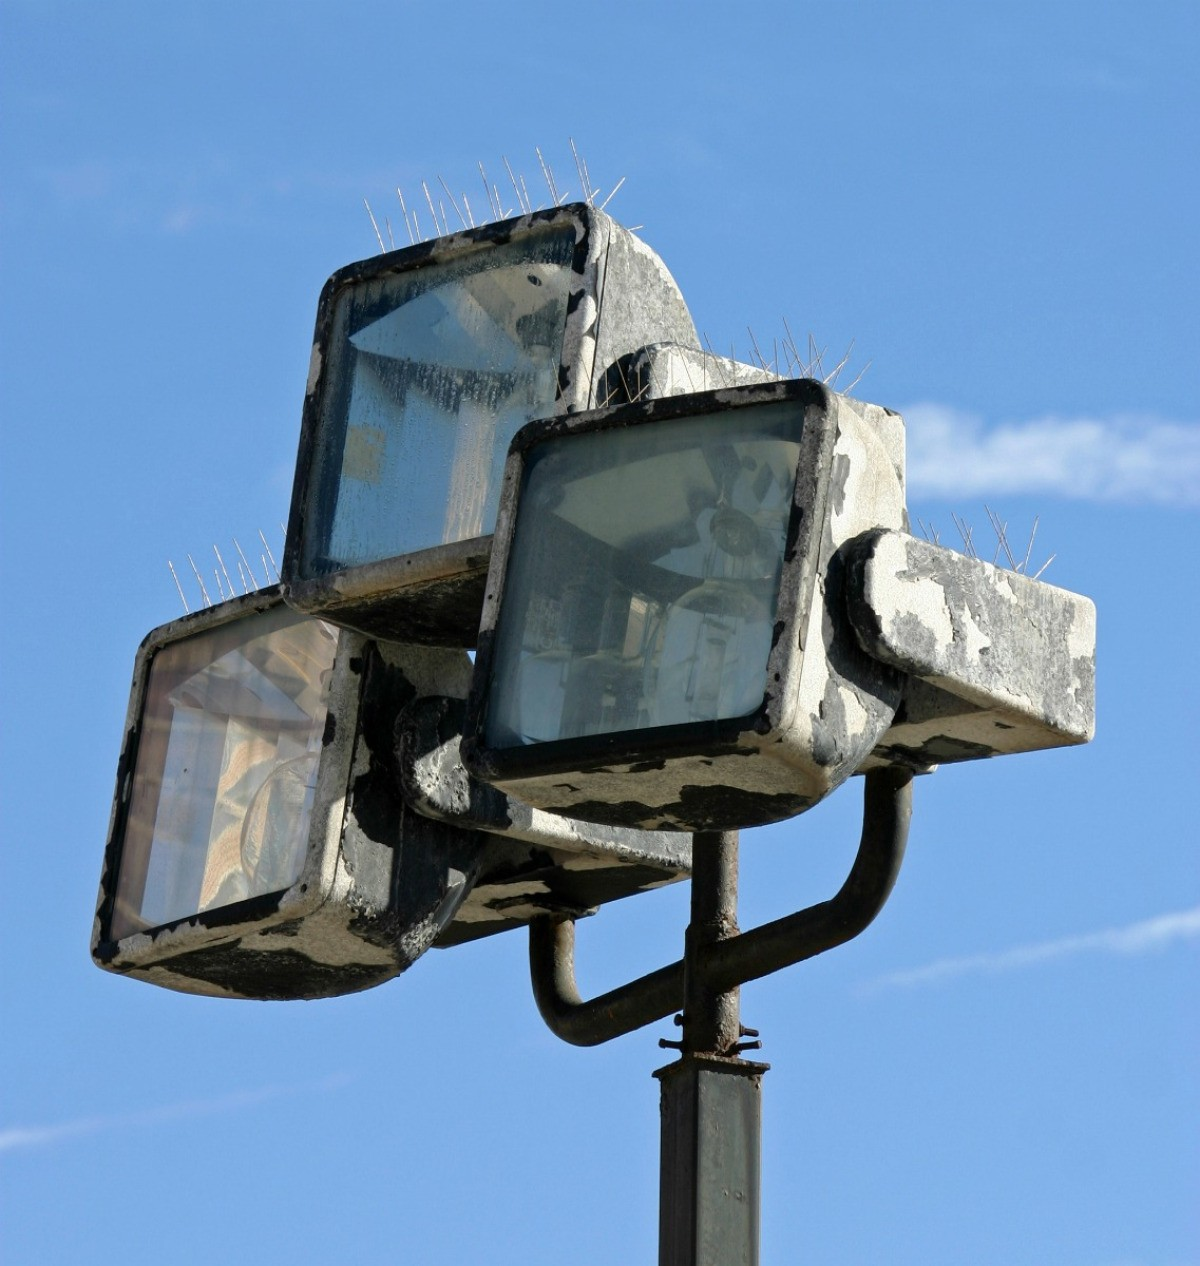 Preventing Ice Buildup On Outdoor Flood Lights